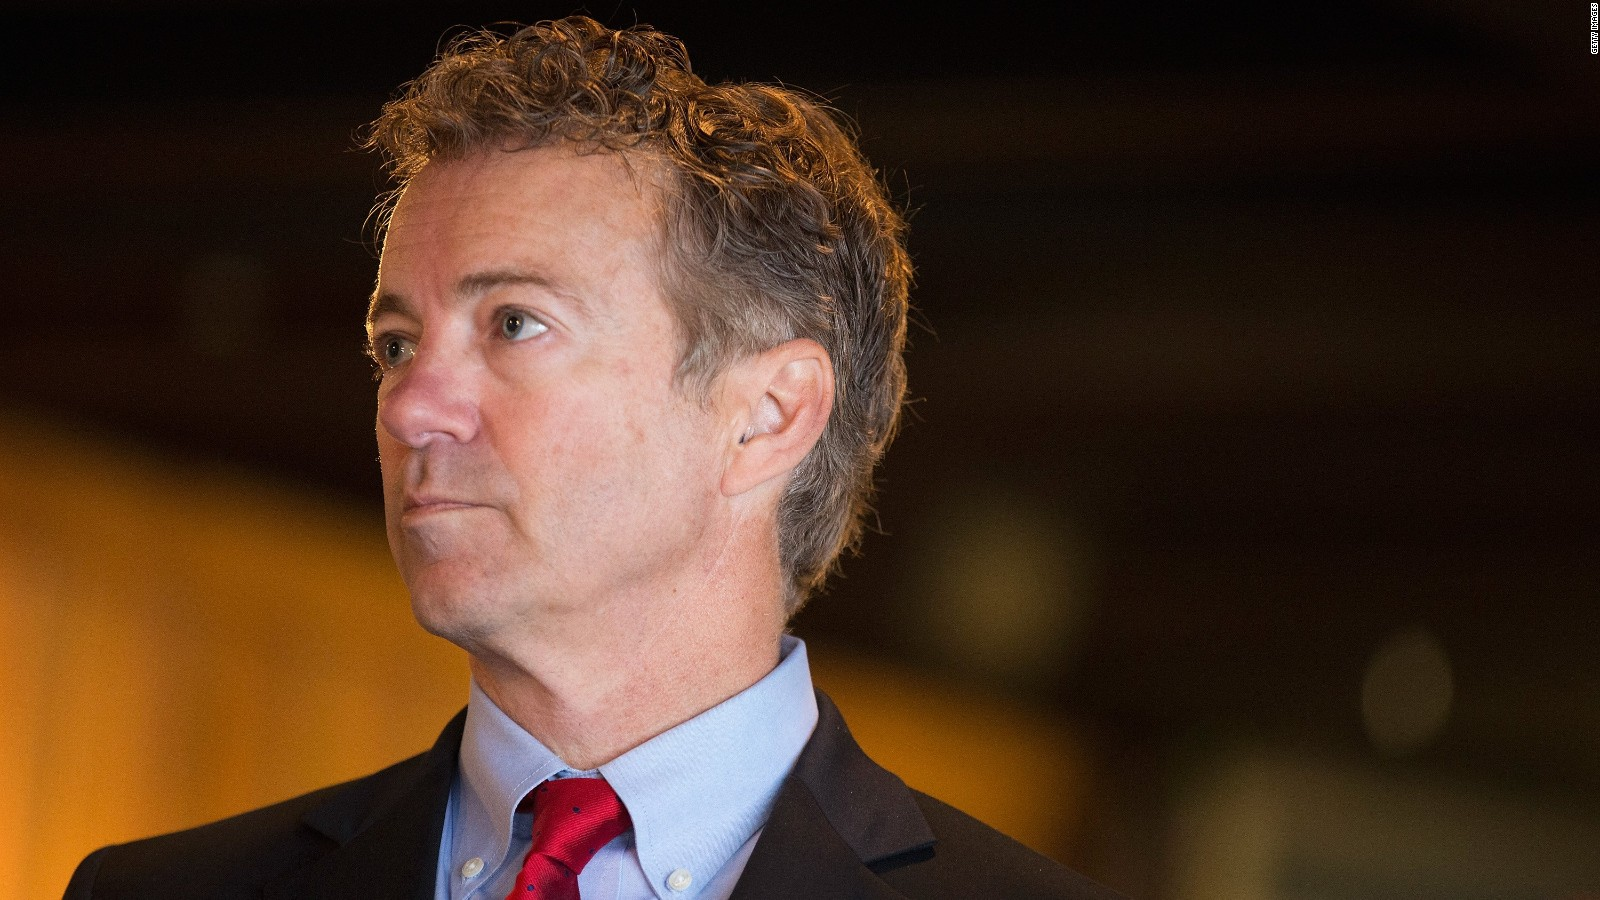 clinton campaign knocks paul for comment about gays cnnpolitics com rand paul tries to derail patriot act renewal